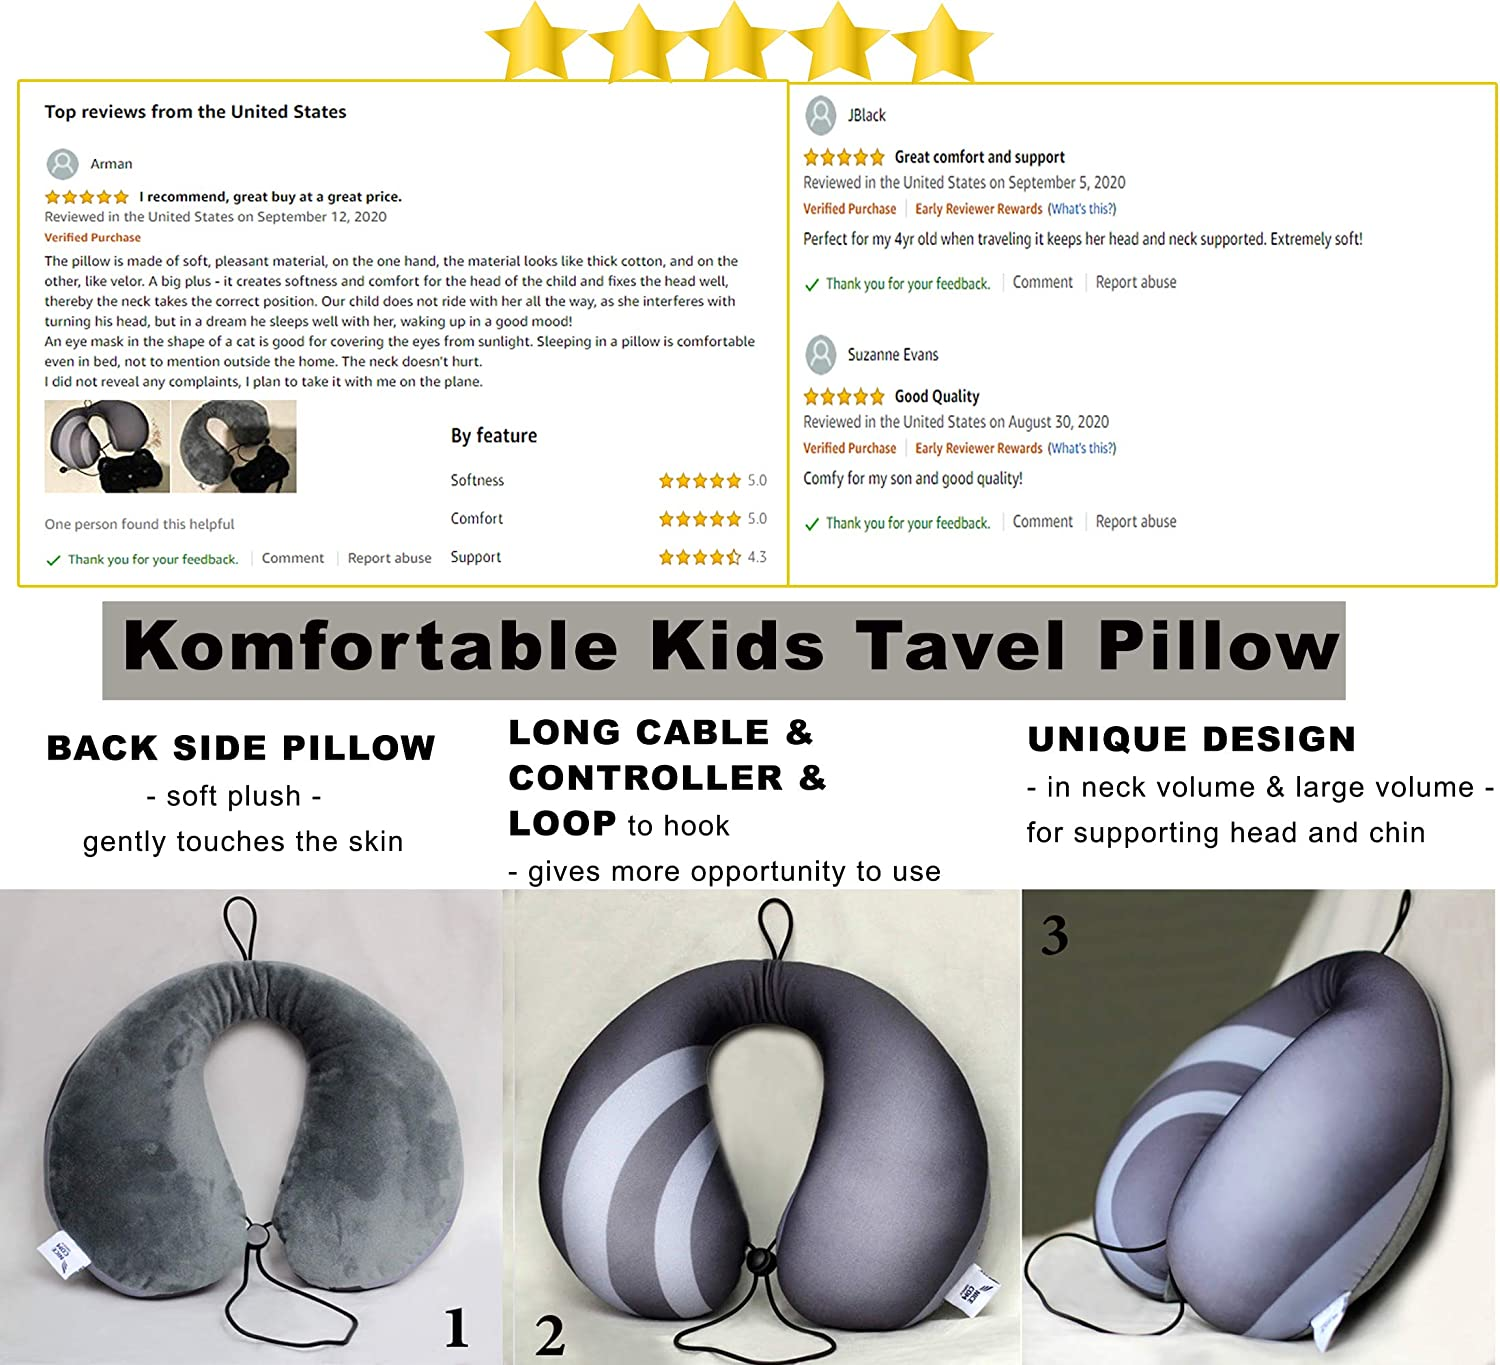 Supporting Head and Chin 4 PIECE Set Soft Eye Mask Girl and Boy Children Ages 3-8 Childs pillow and blanket Travel Pillow Set For kids Travel Blanket /& Backpack Travel Blanket Set